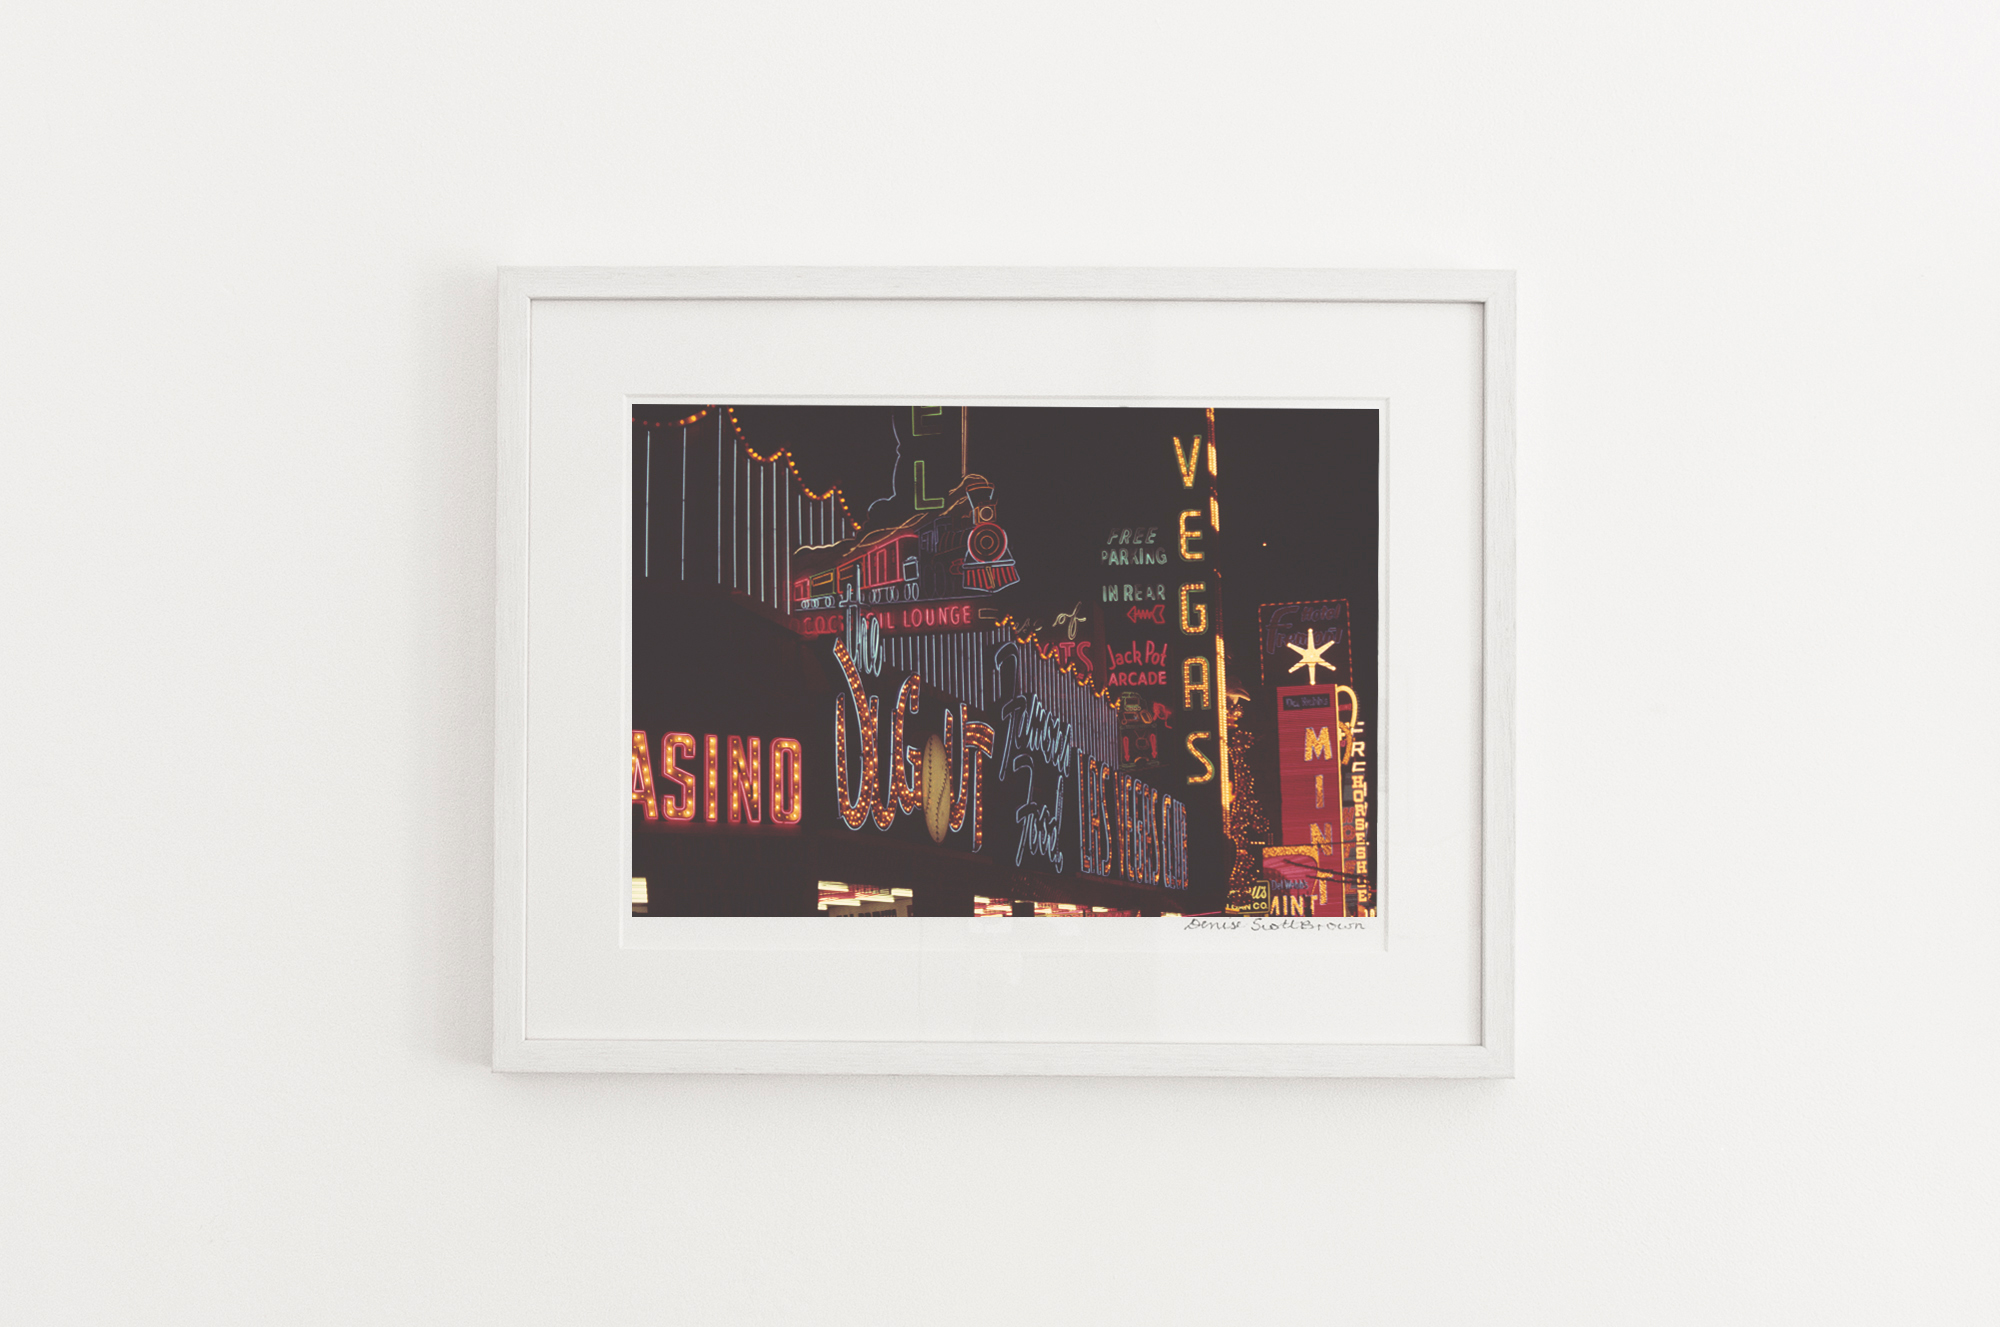 Signs, Las Vegas , around 1966. Giclée pigment on Hahnemuhle archivalpaper, 45.5 x 30.3 cm (framed), Edition of 10